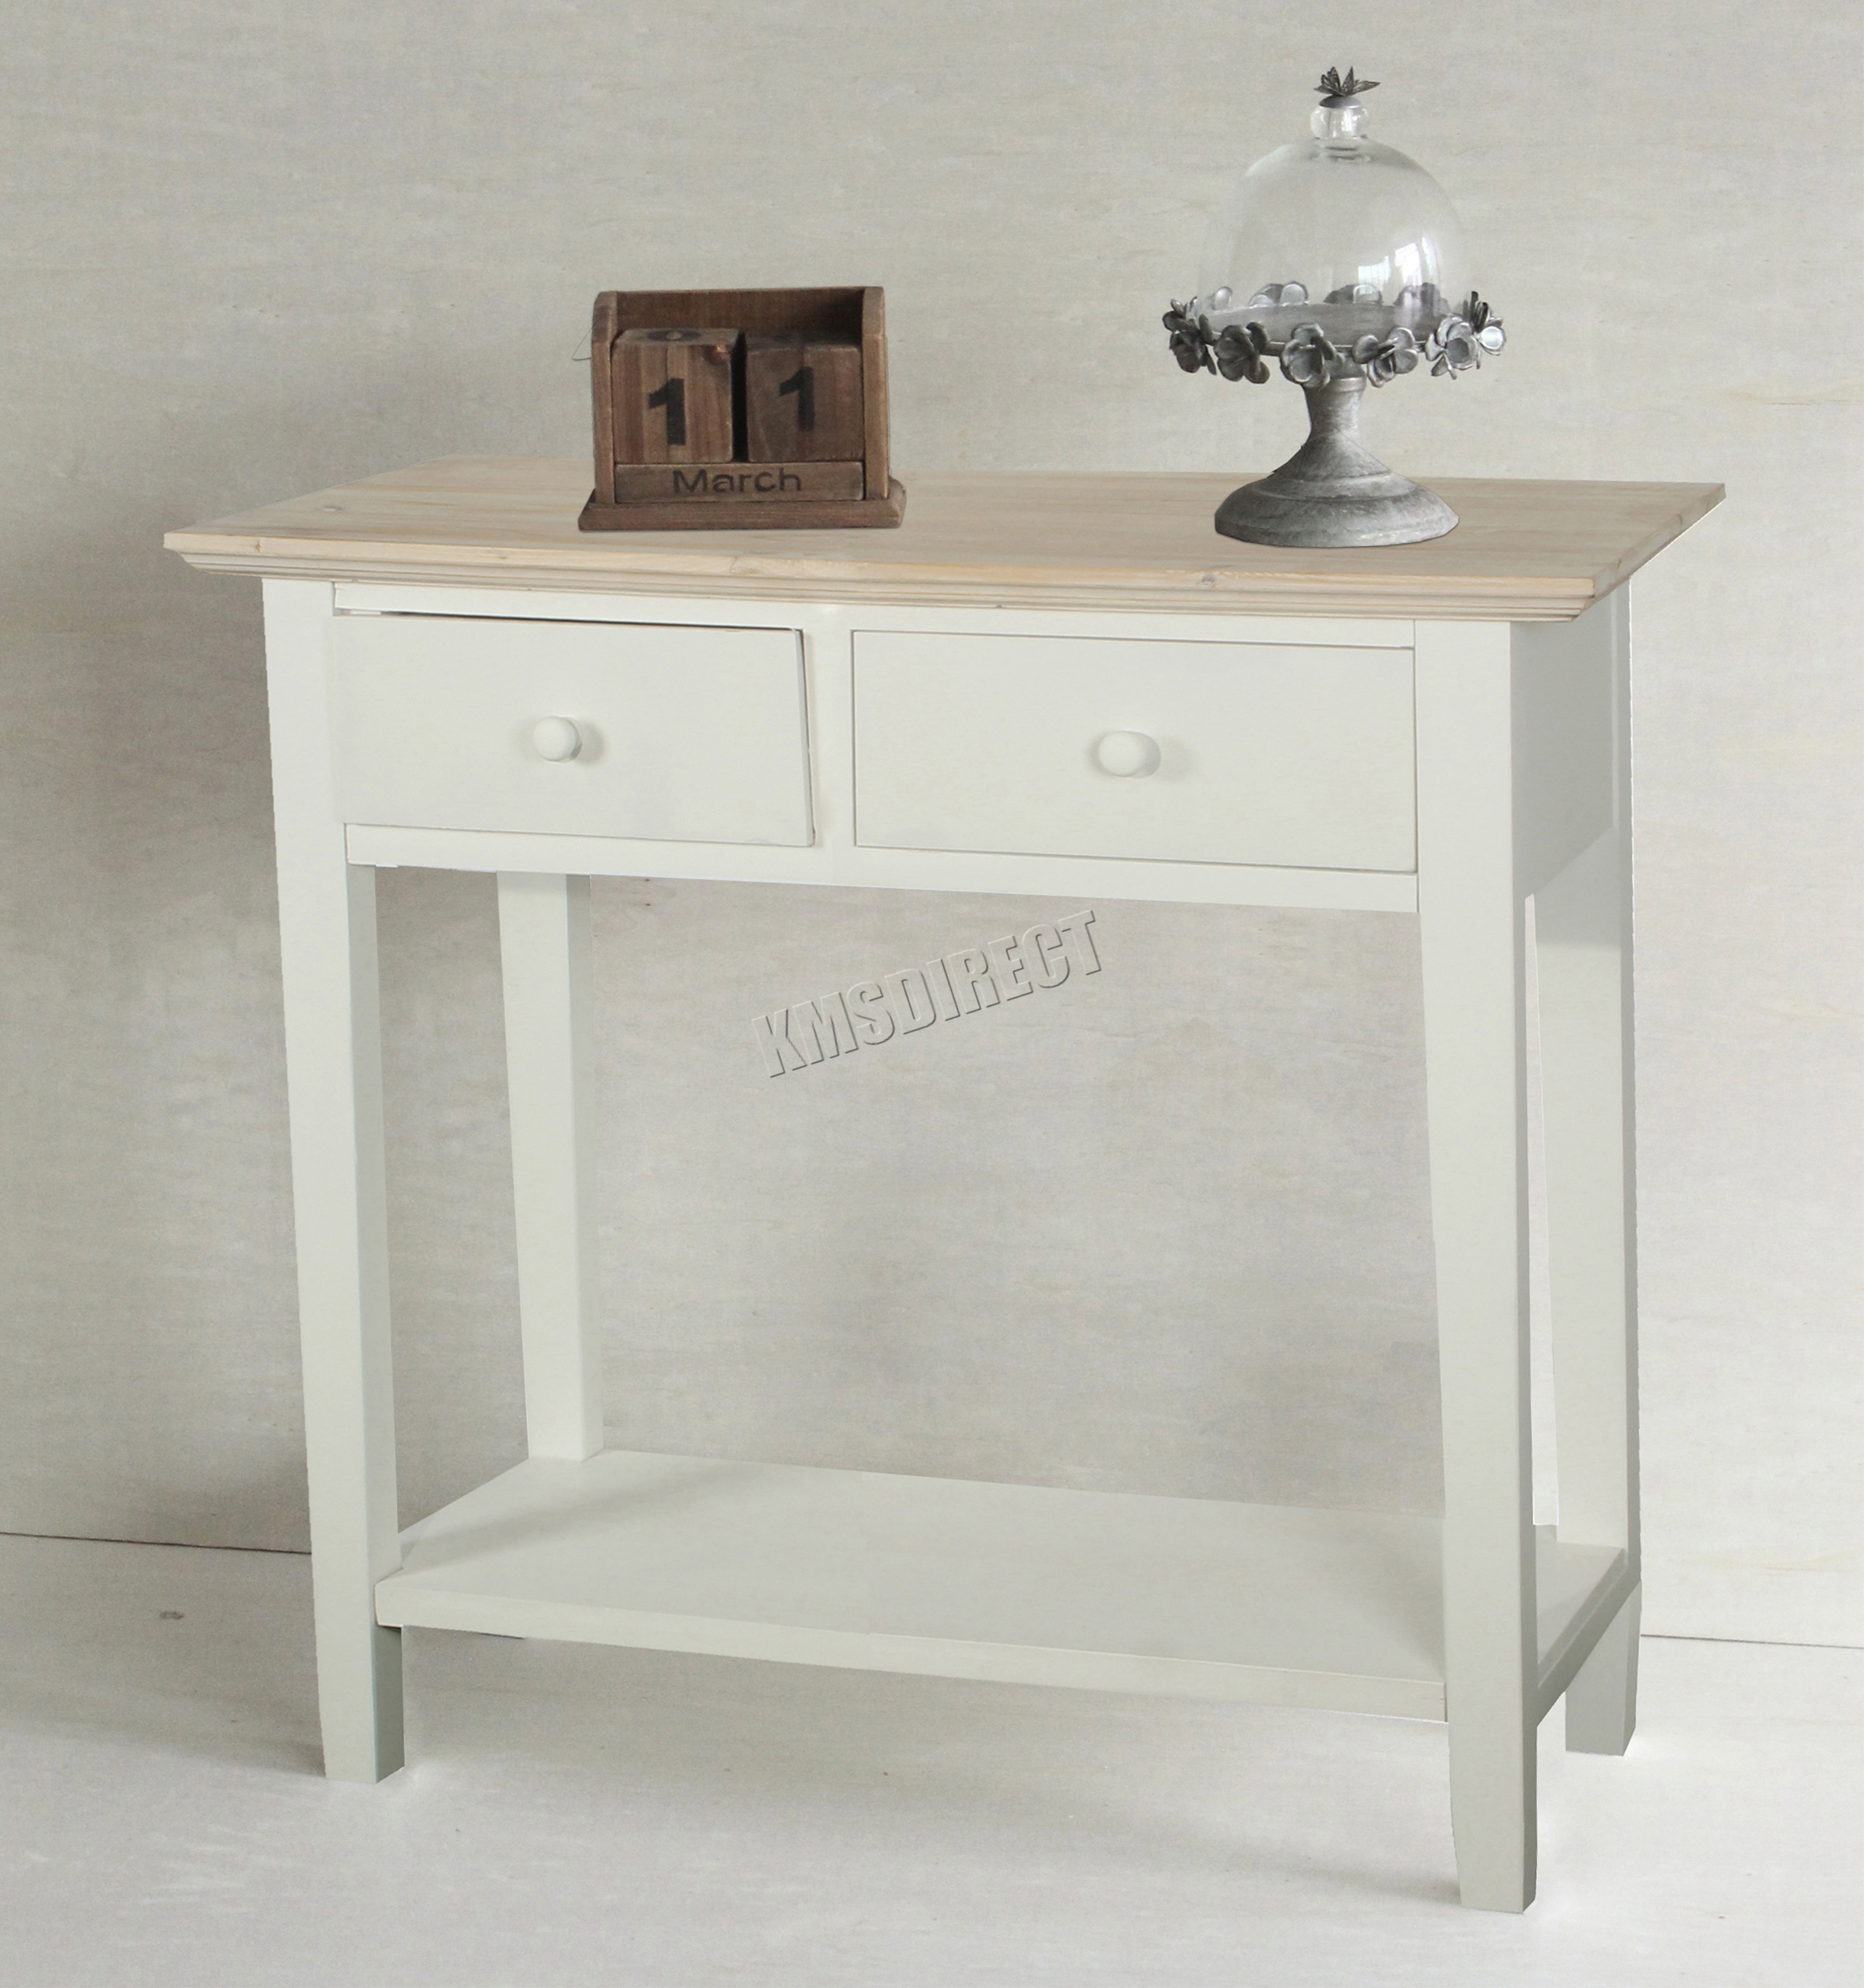 kitchen storage table farmhouse islands foxhunter console 2 drawers wood hallway side